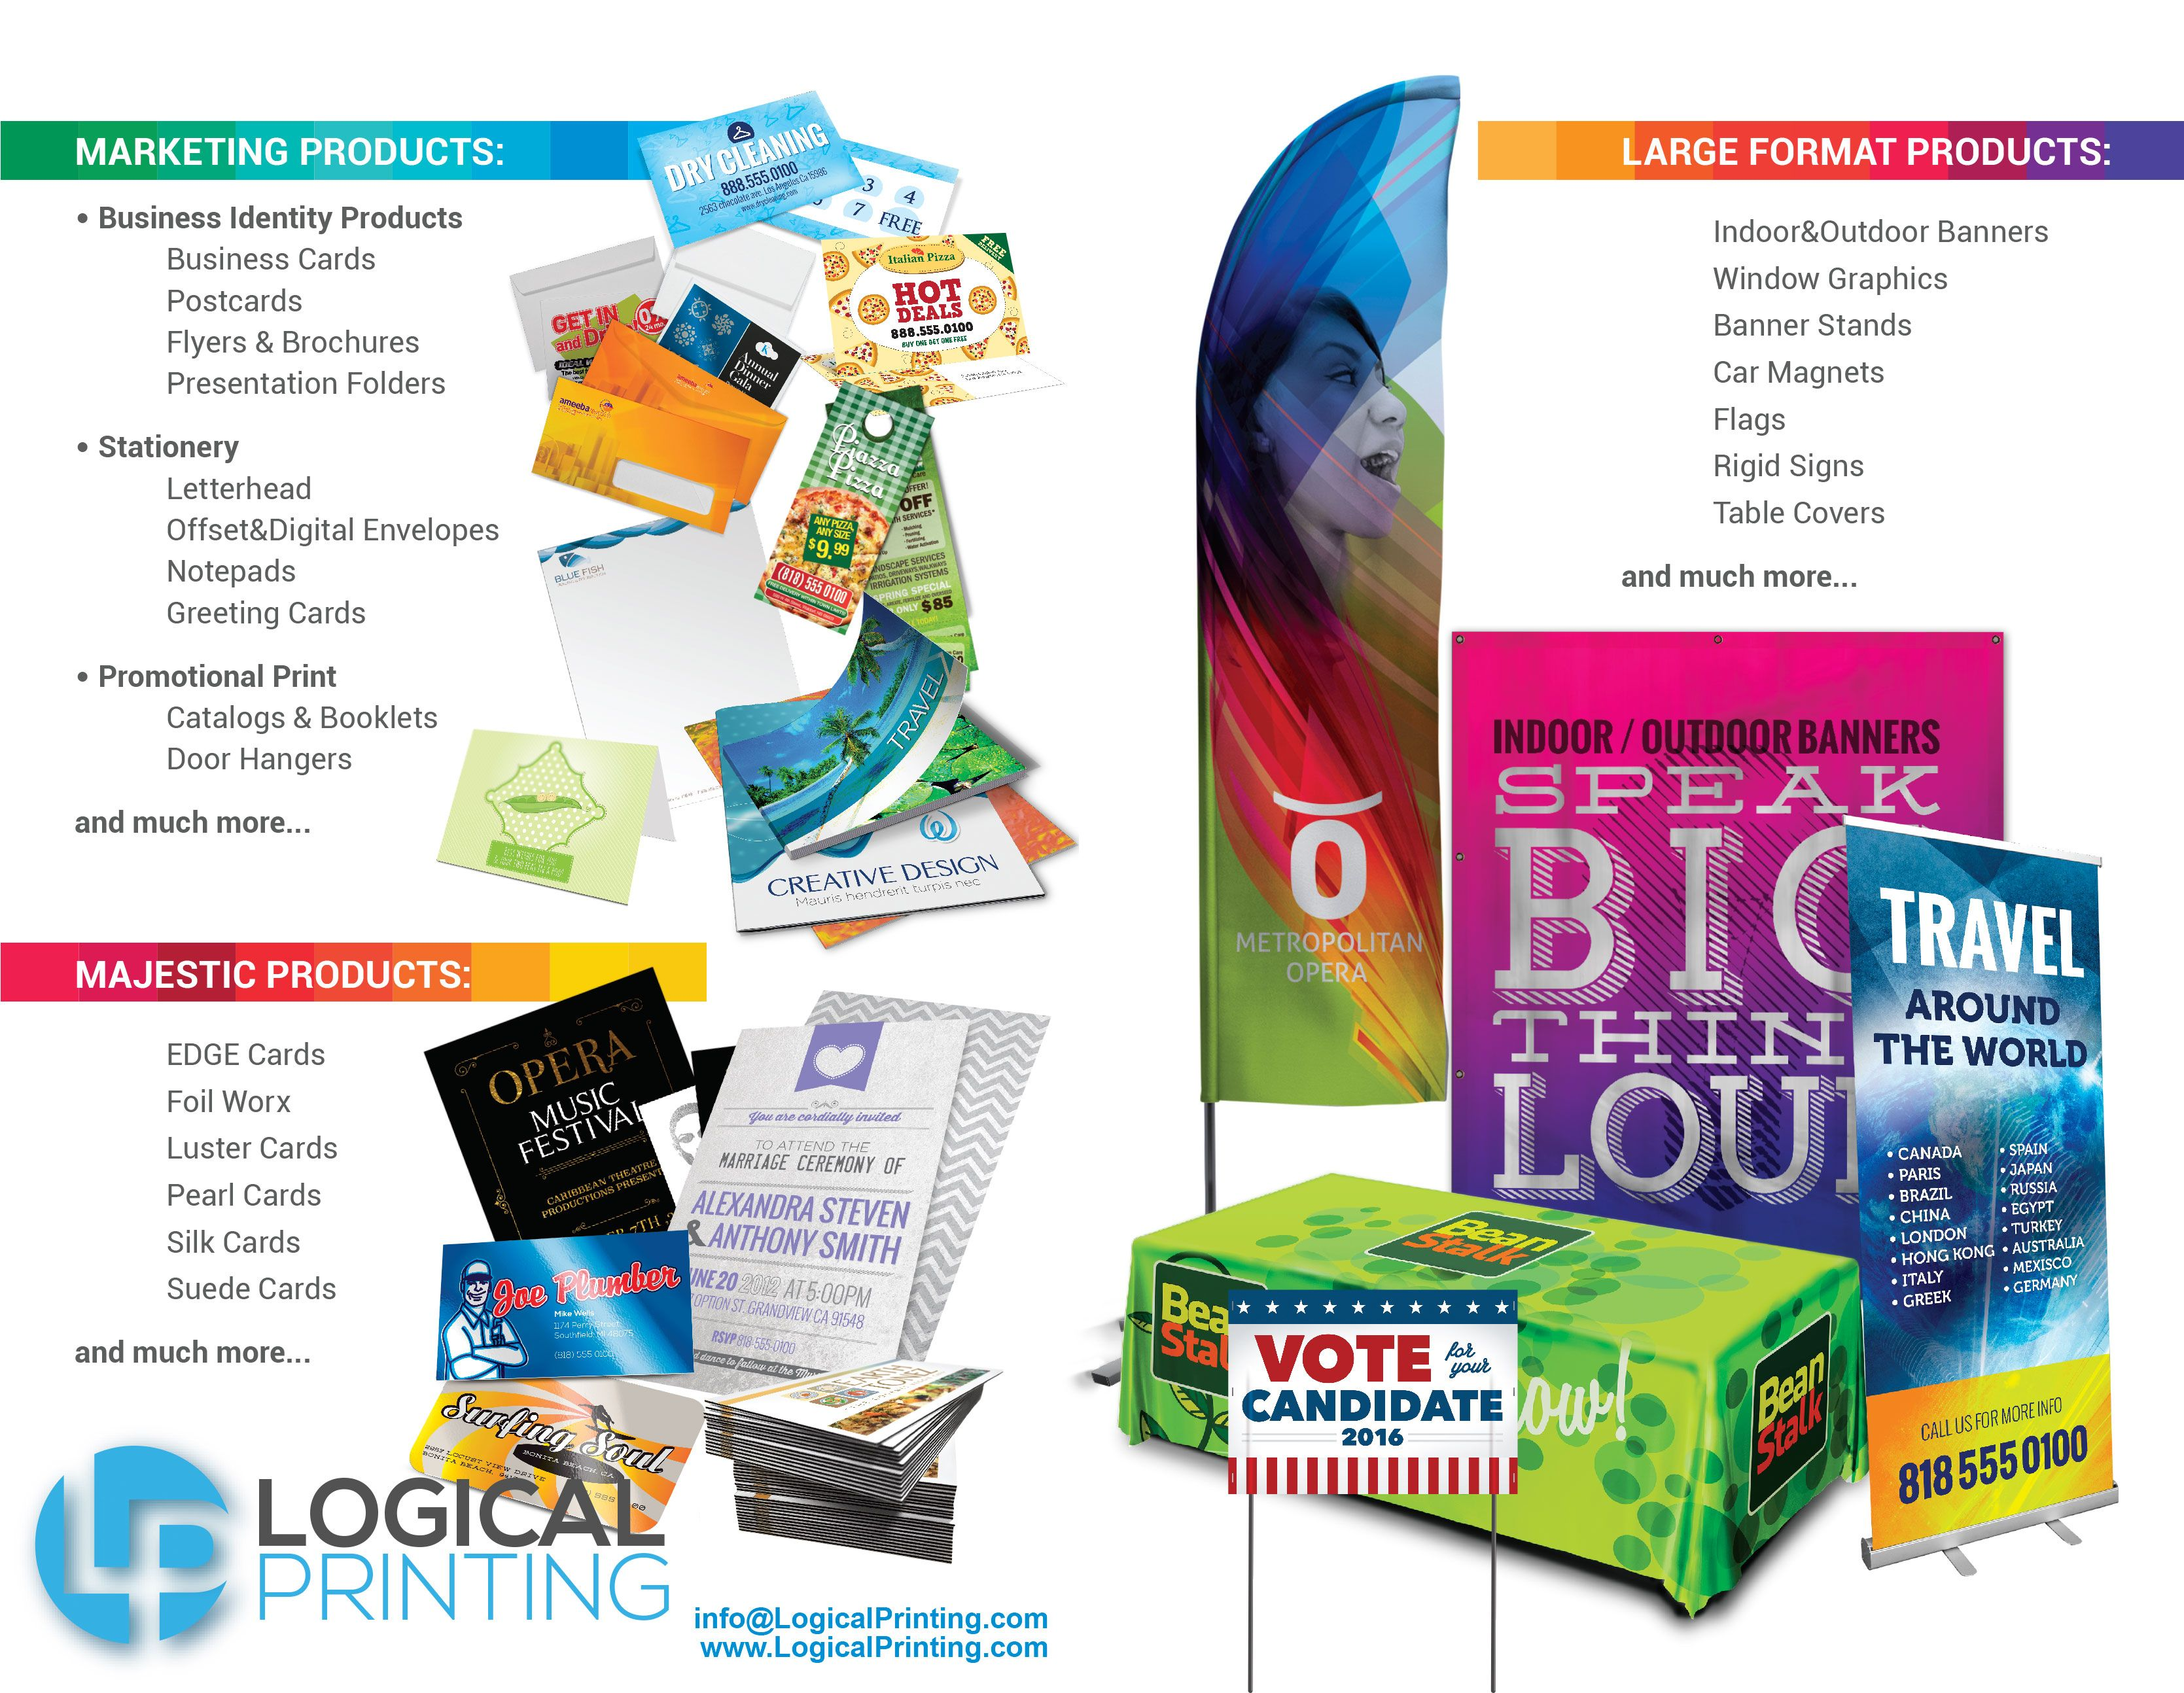 Visit Us Online Www Logicalprinting Com Great Deals On Business Cards Flyers Flags Magnets And More Outdoor Banners Presentation Folder Window Graphics